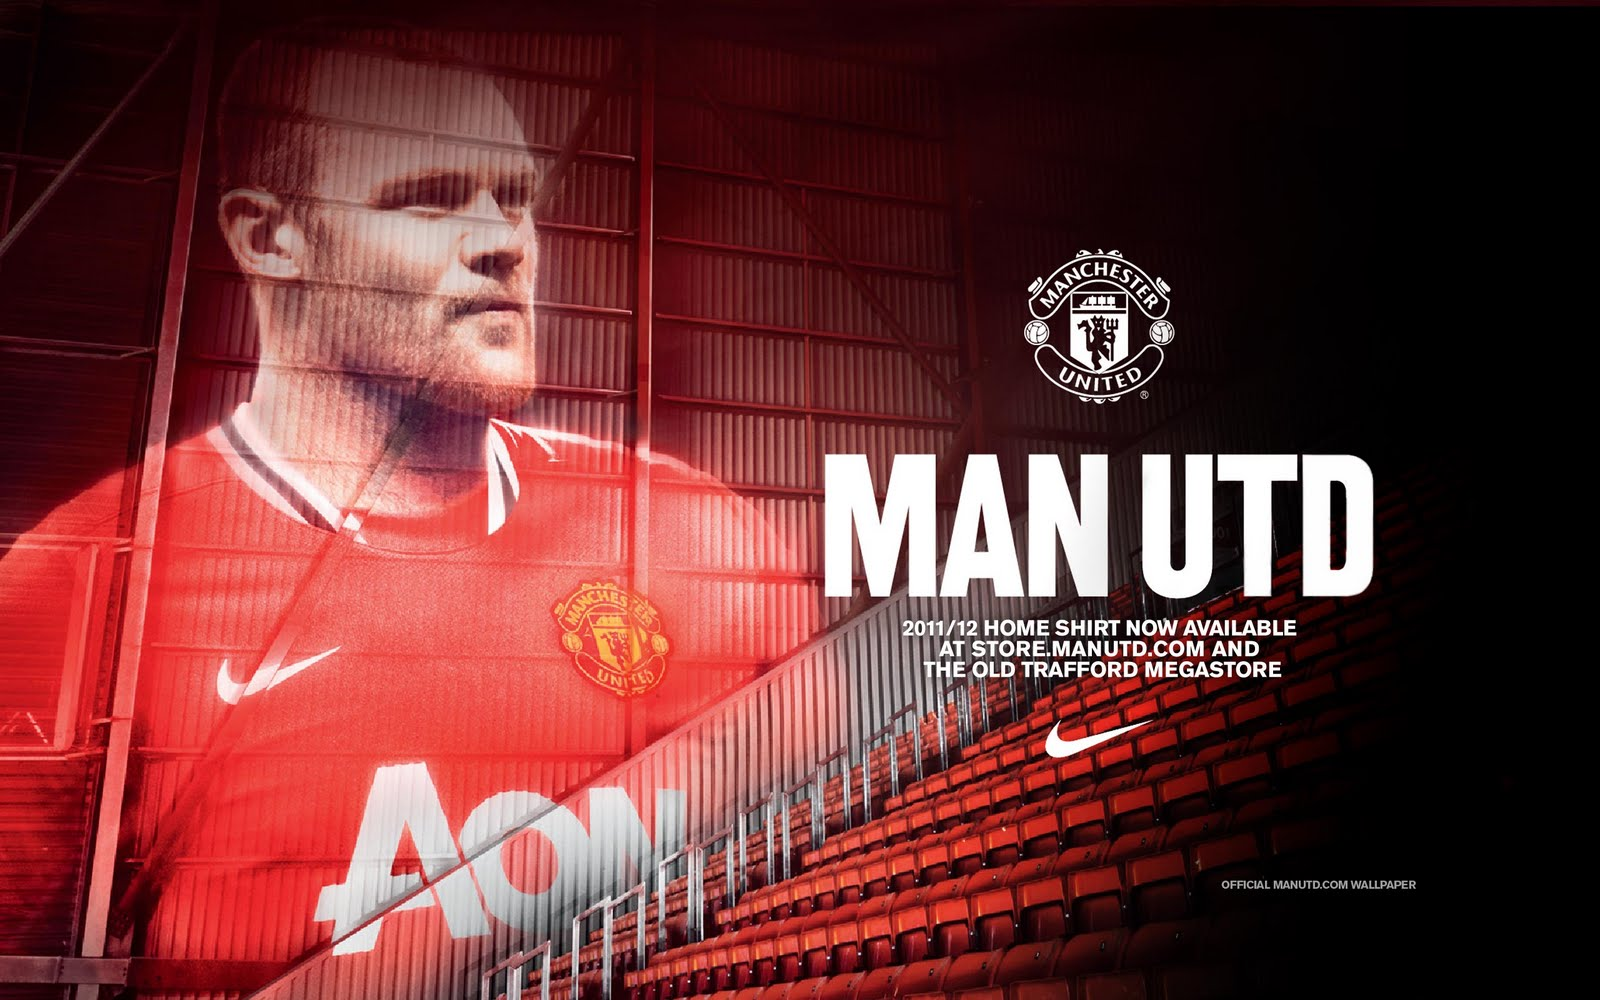 http://4.bp.blogspot.com/-aIdw3IN_pf4/Tj-TV3-DijI/AAAAAAAACfI/wt01mC930Pc/s1600/Manchester%2BUnited%2BJersey%2B2012%2BWallpaper.png